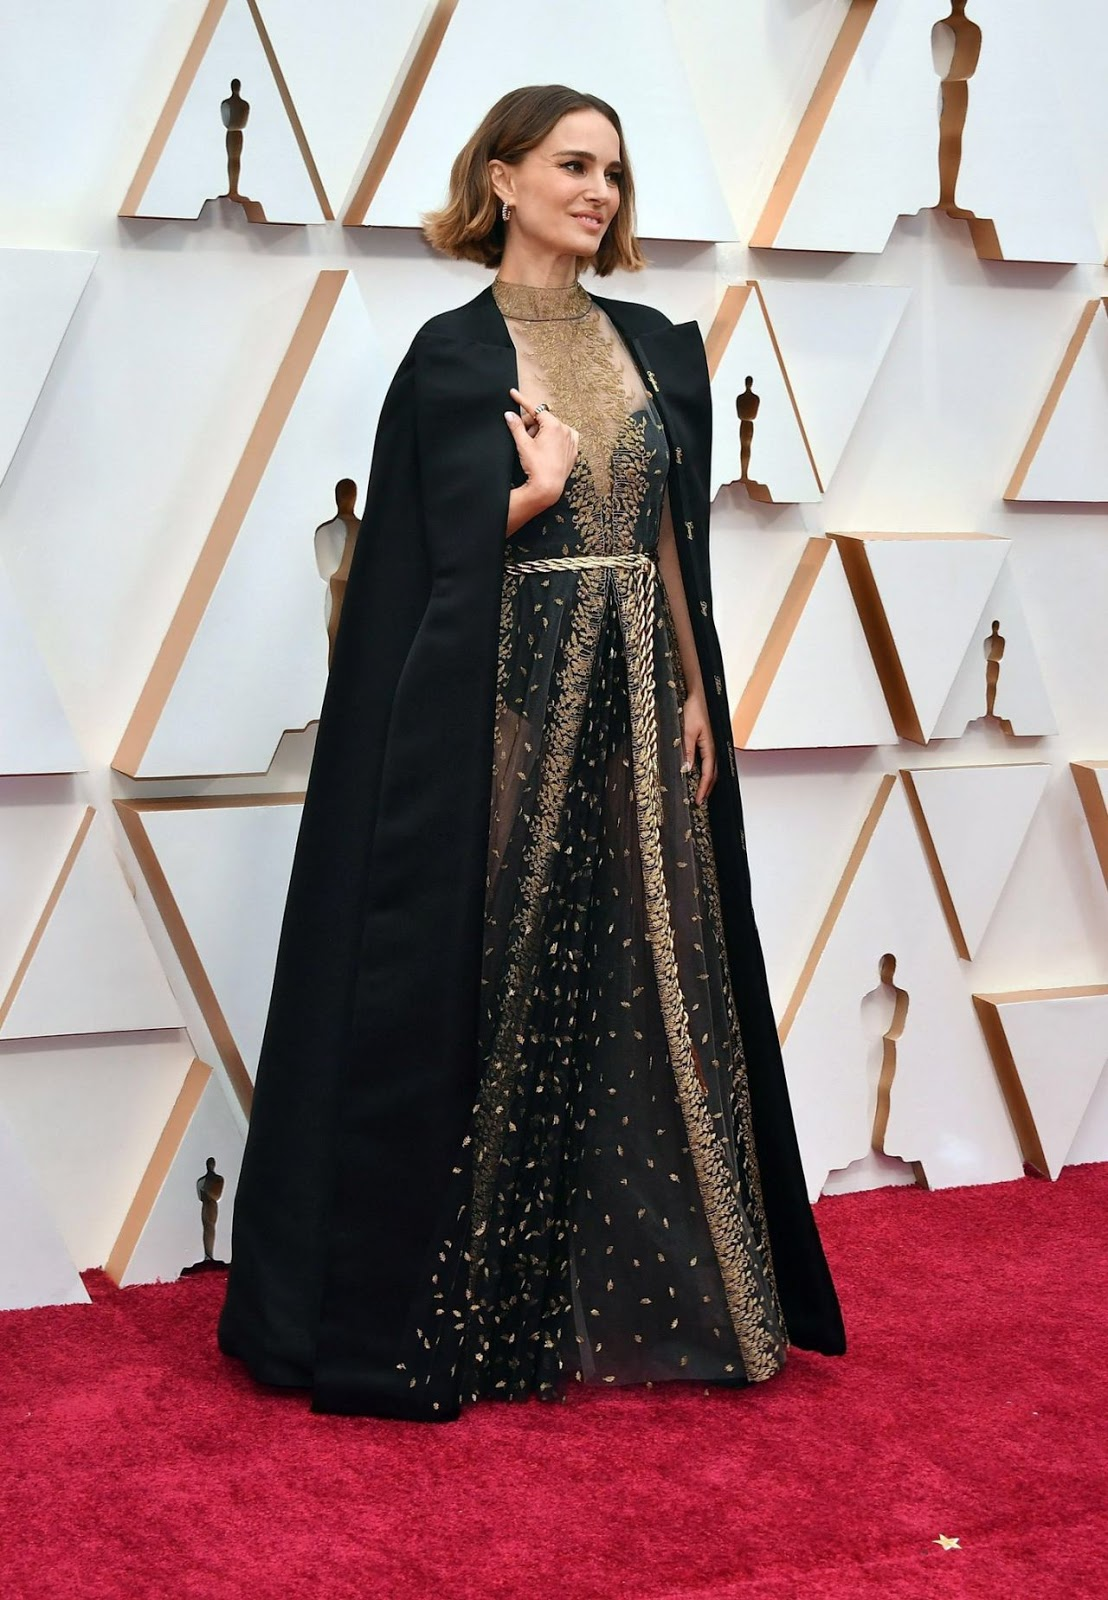 Natalie Portman - Oscars 2020 Red Carpet - 92nd Annual Academy Awards in Los Angeles